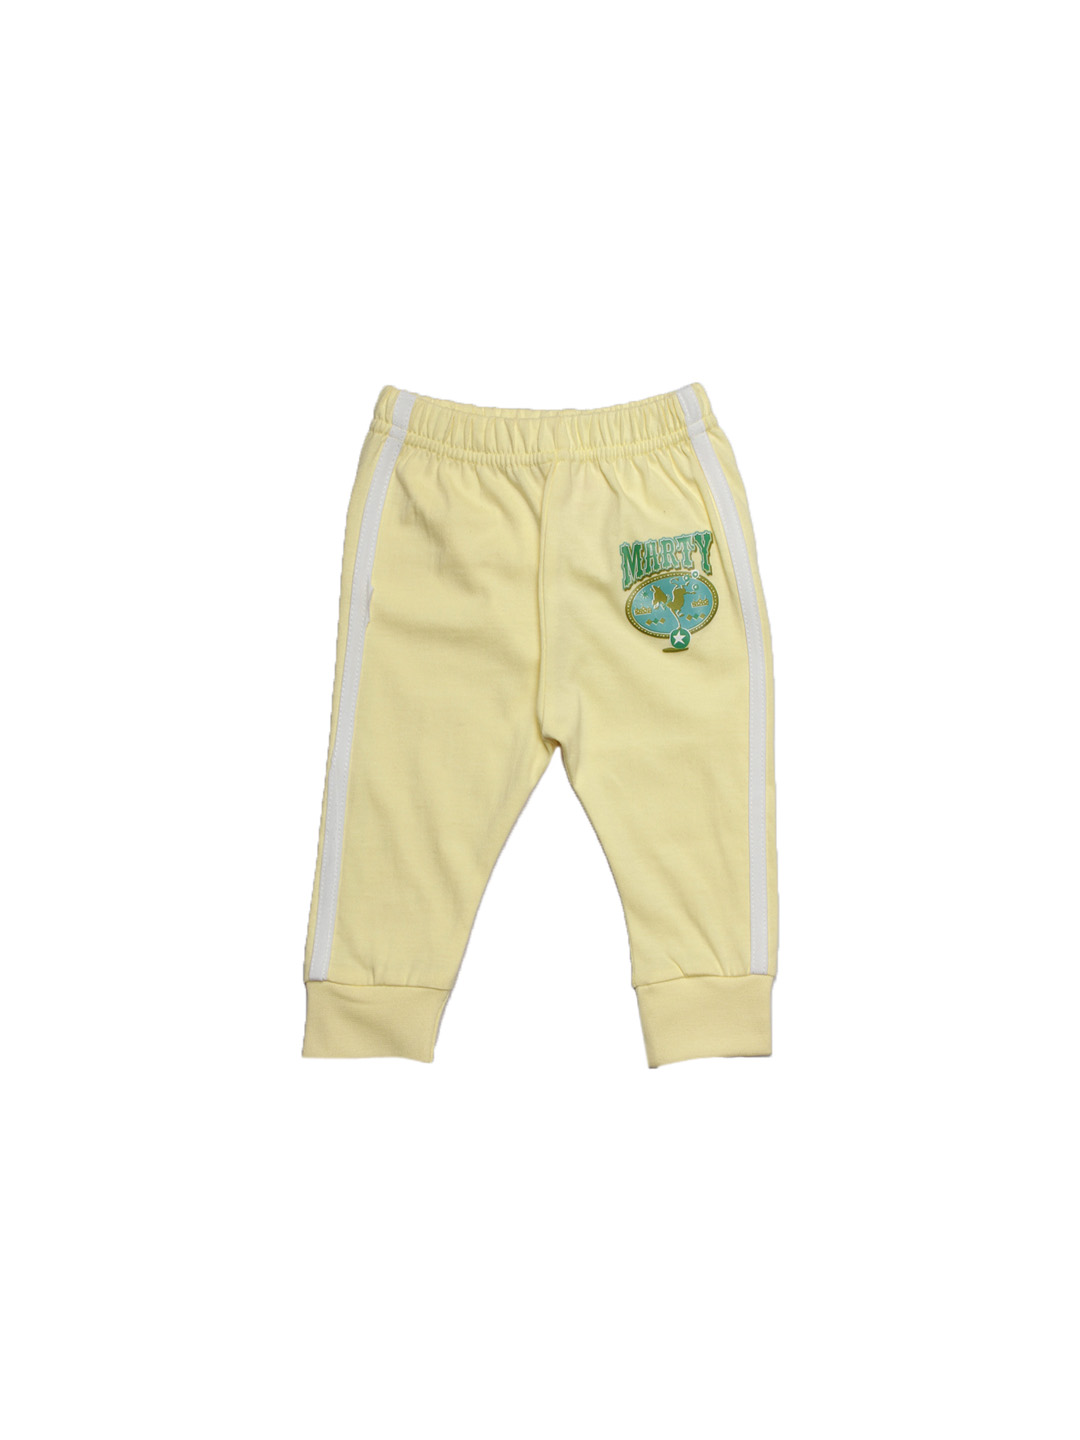 Madagascar3 Infant Boys Lemon Yellow Leggings